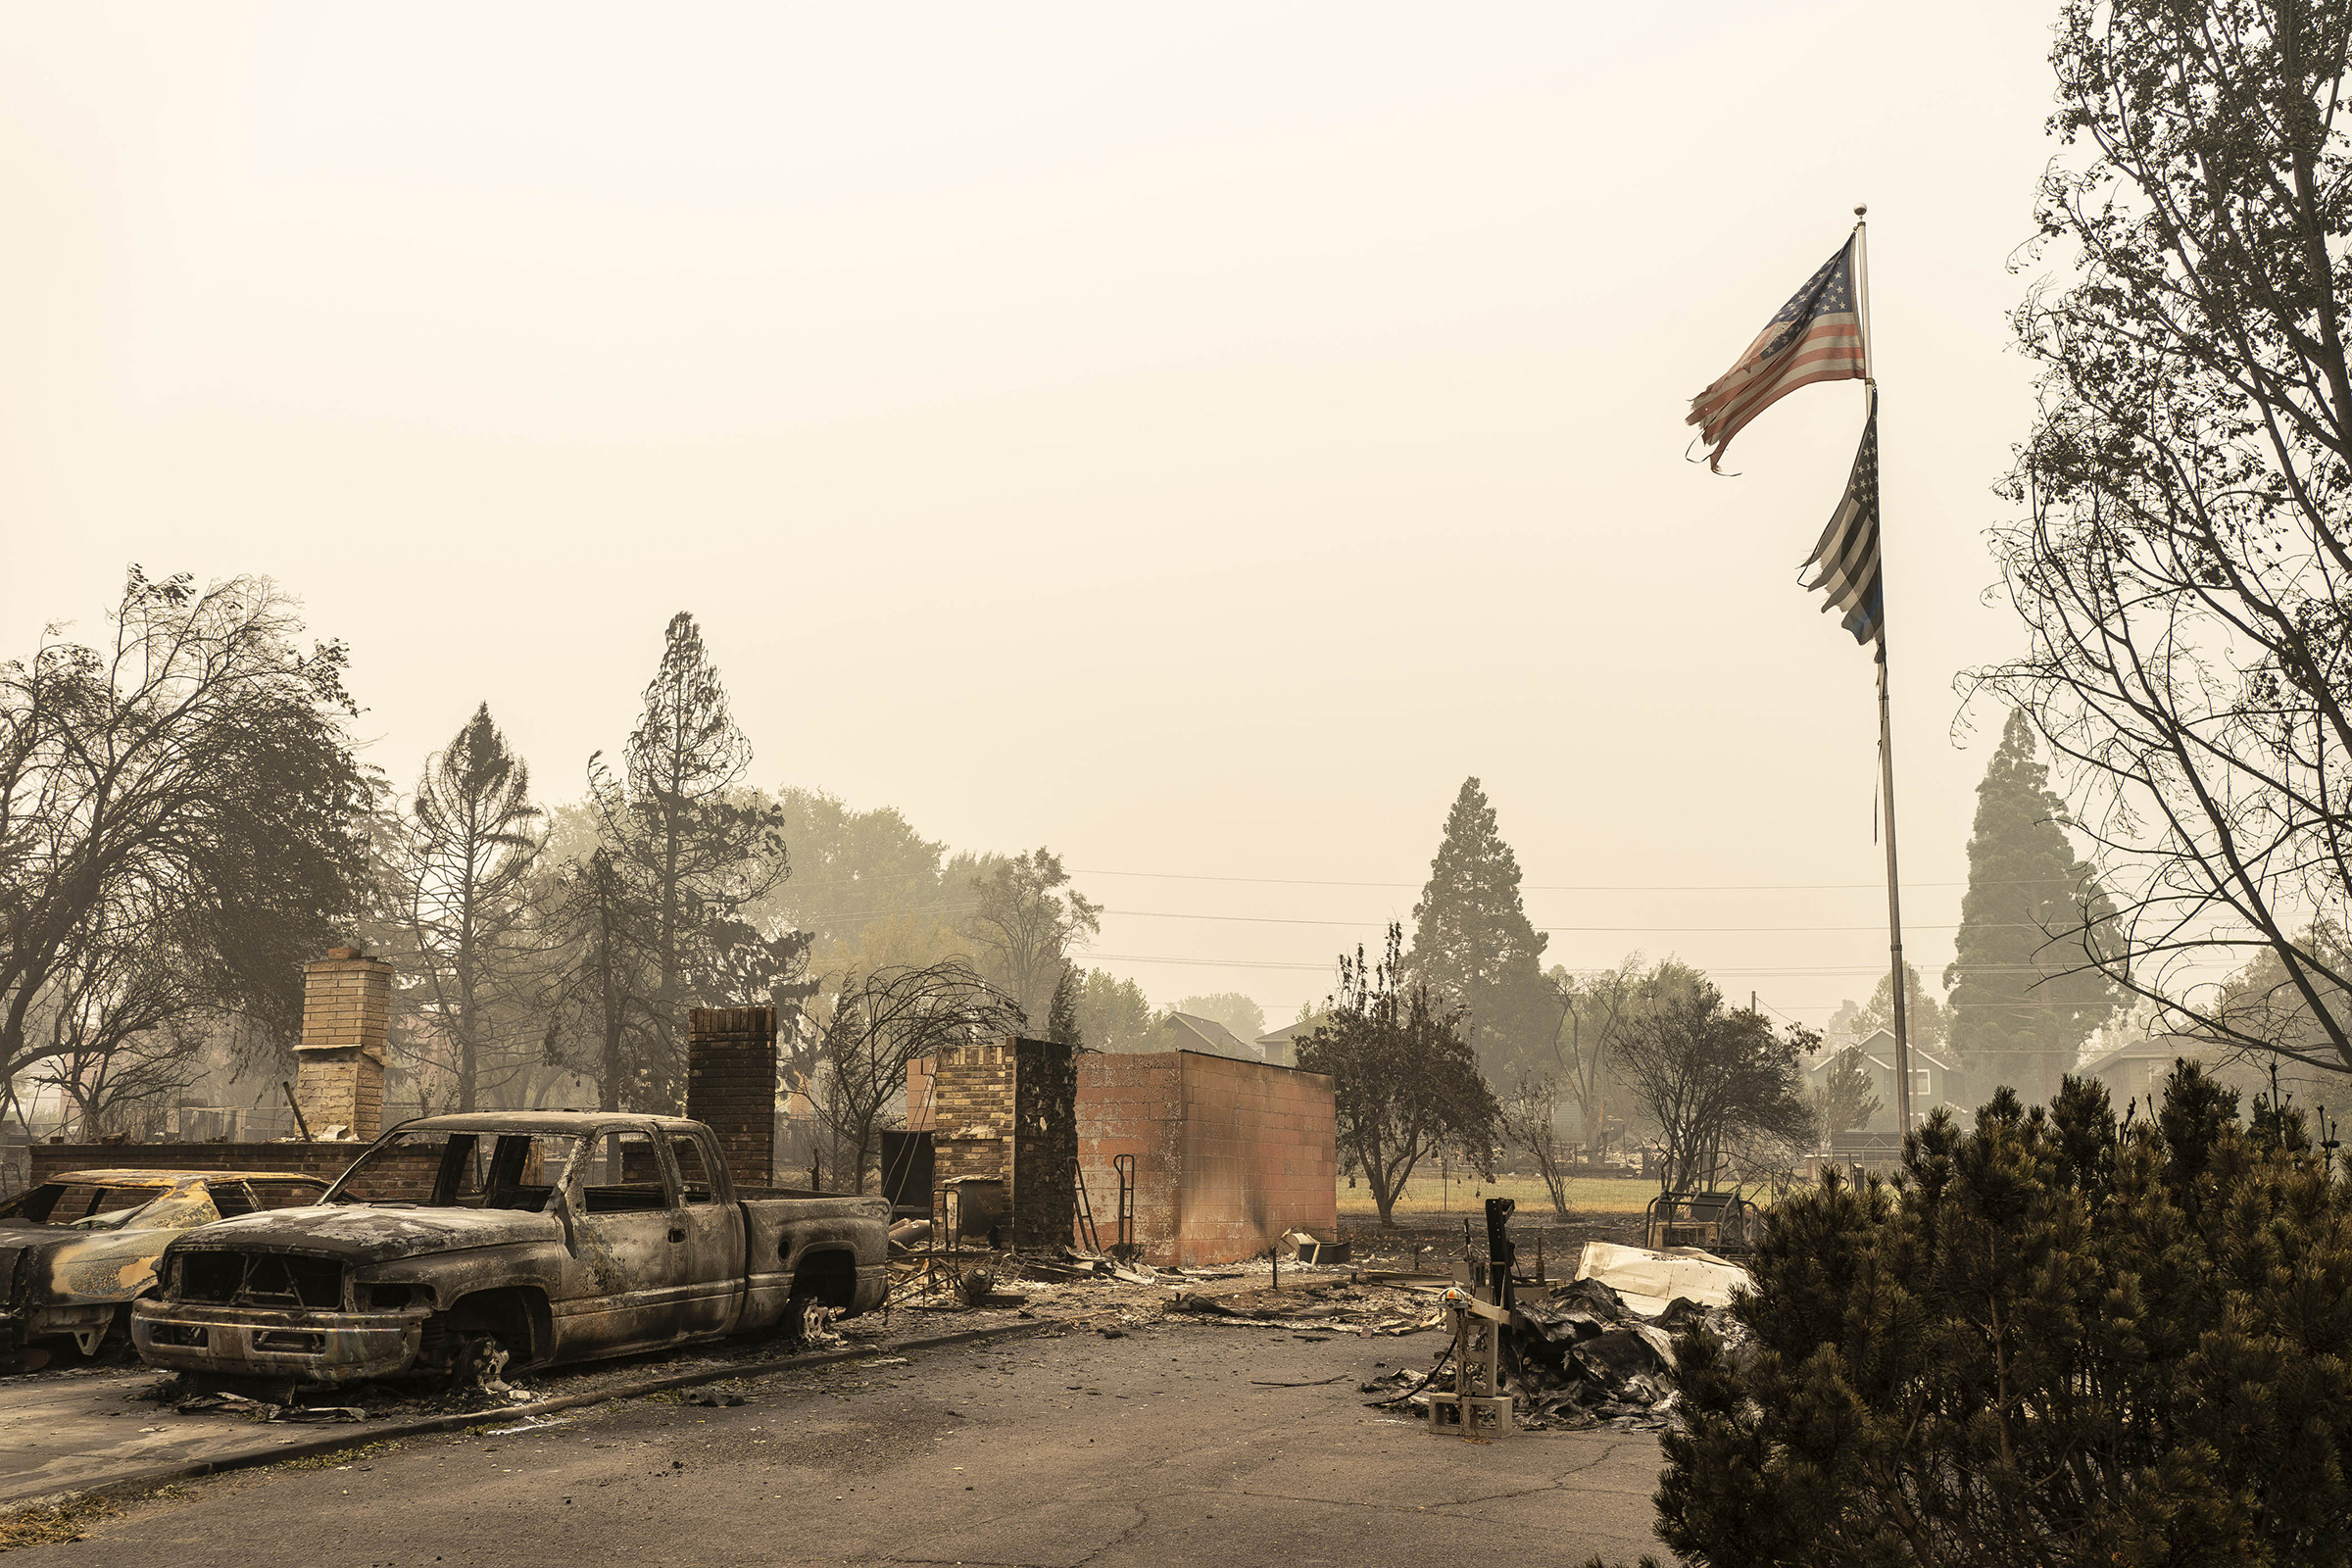 A U.S. flag flies at a burnt home in a neighborhood destroyed by wildfire on Sept. 13 in Talent, OR